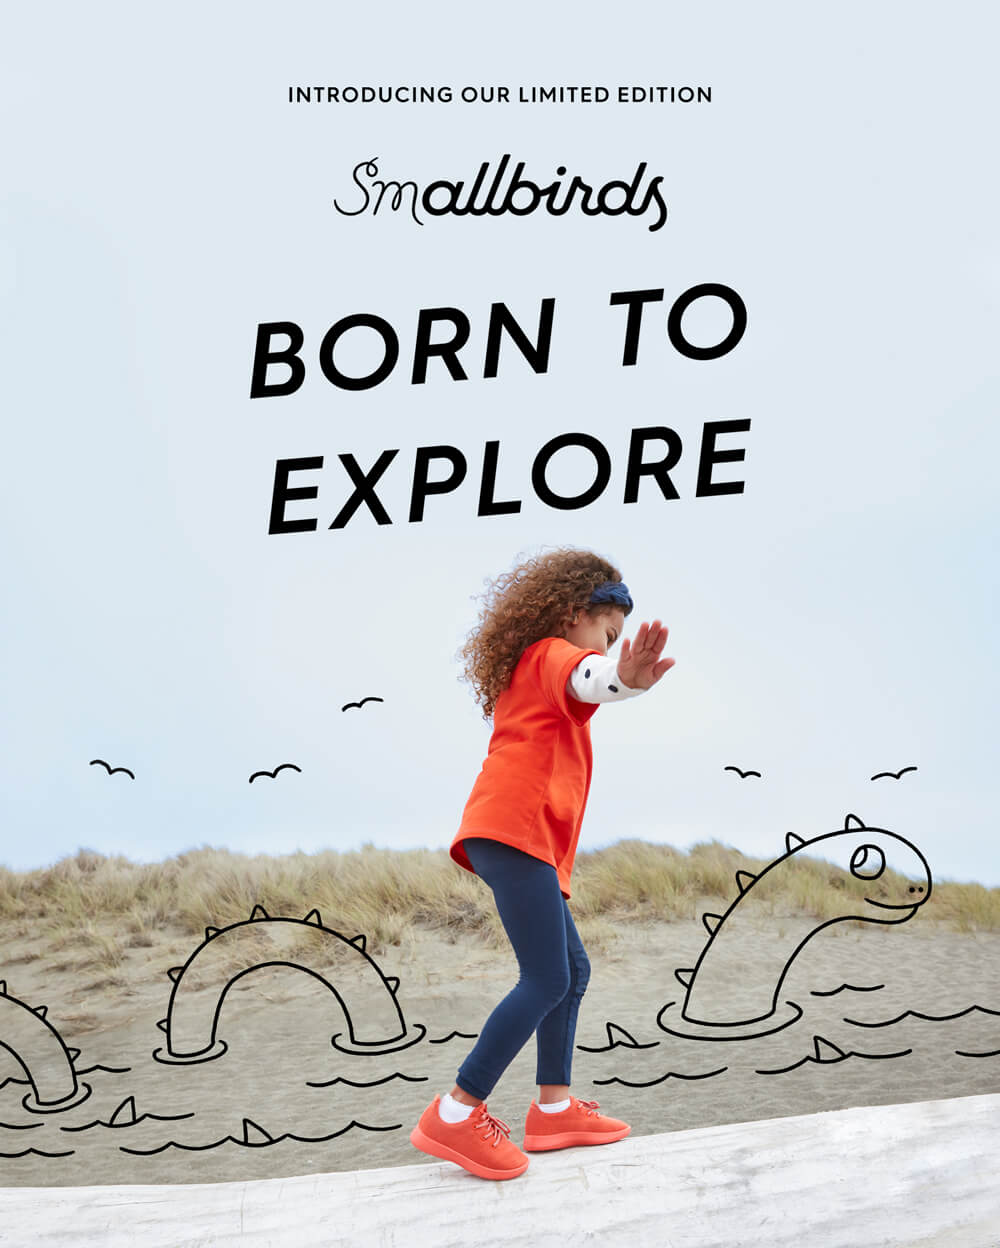 born to explore - silly campaign